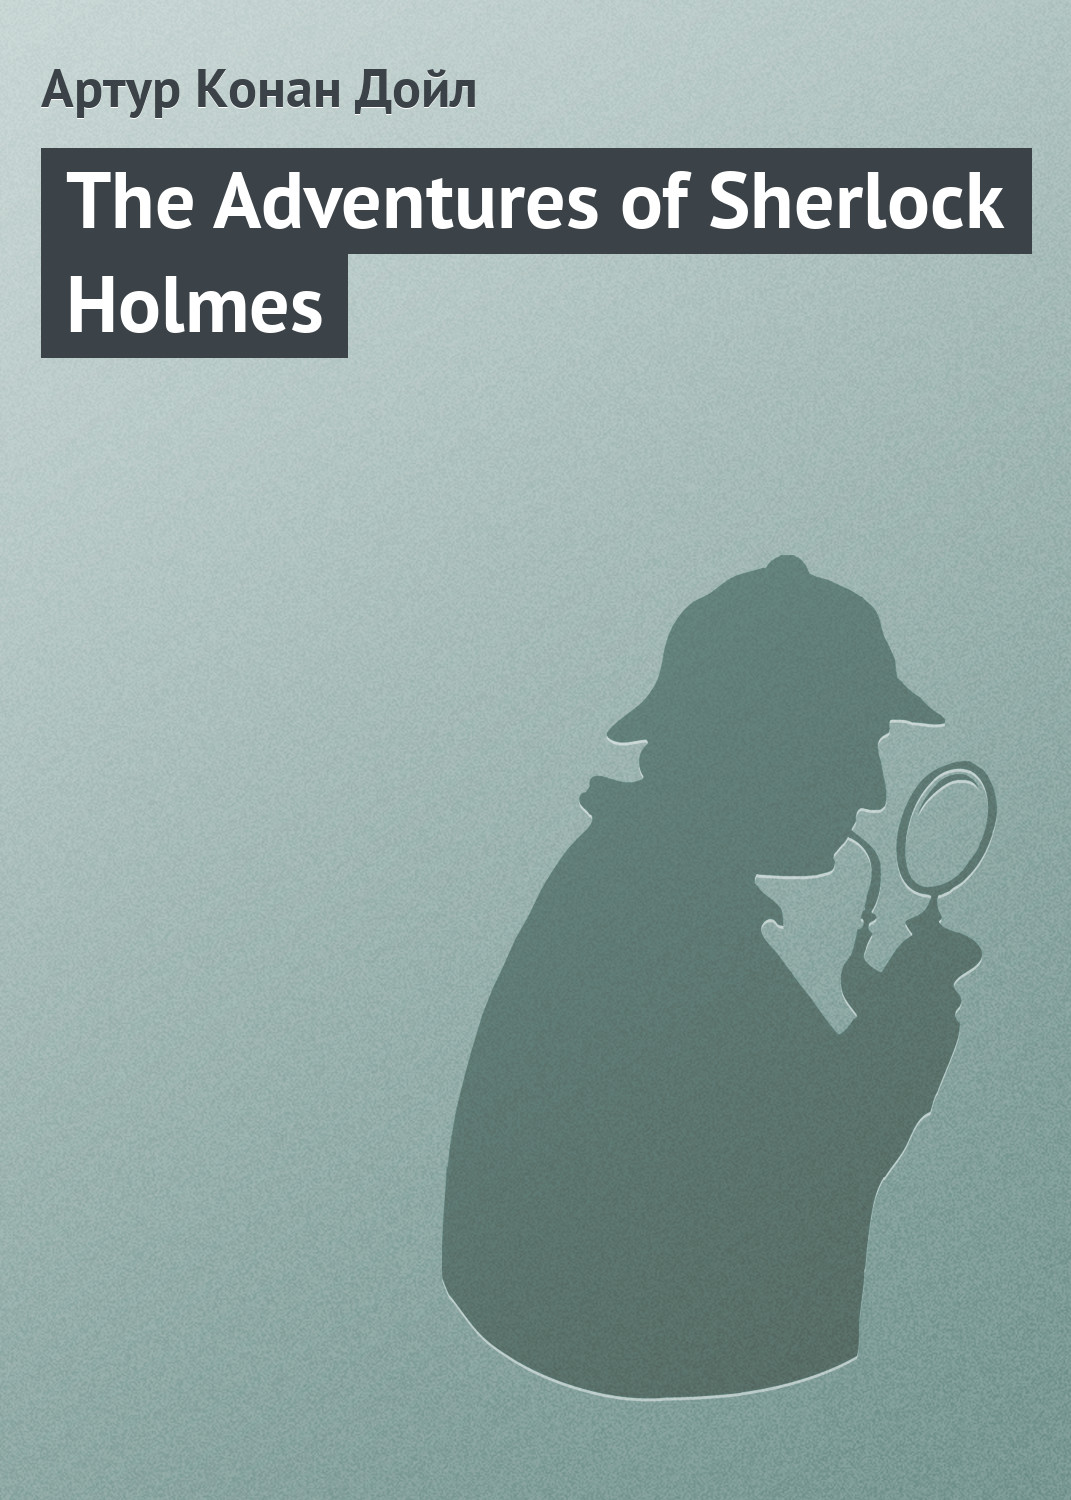 Артур Конан Дойл The Adventures of Sherlock Holmes конверт детский womar womar конверт в коляску зимний siberia черный